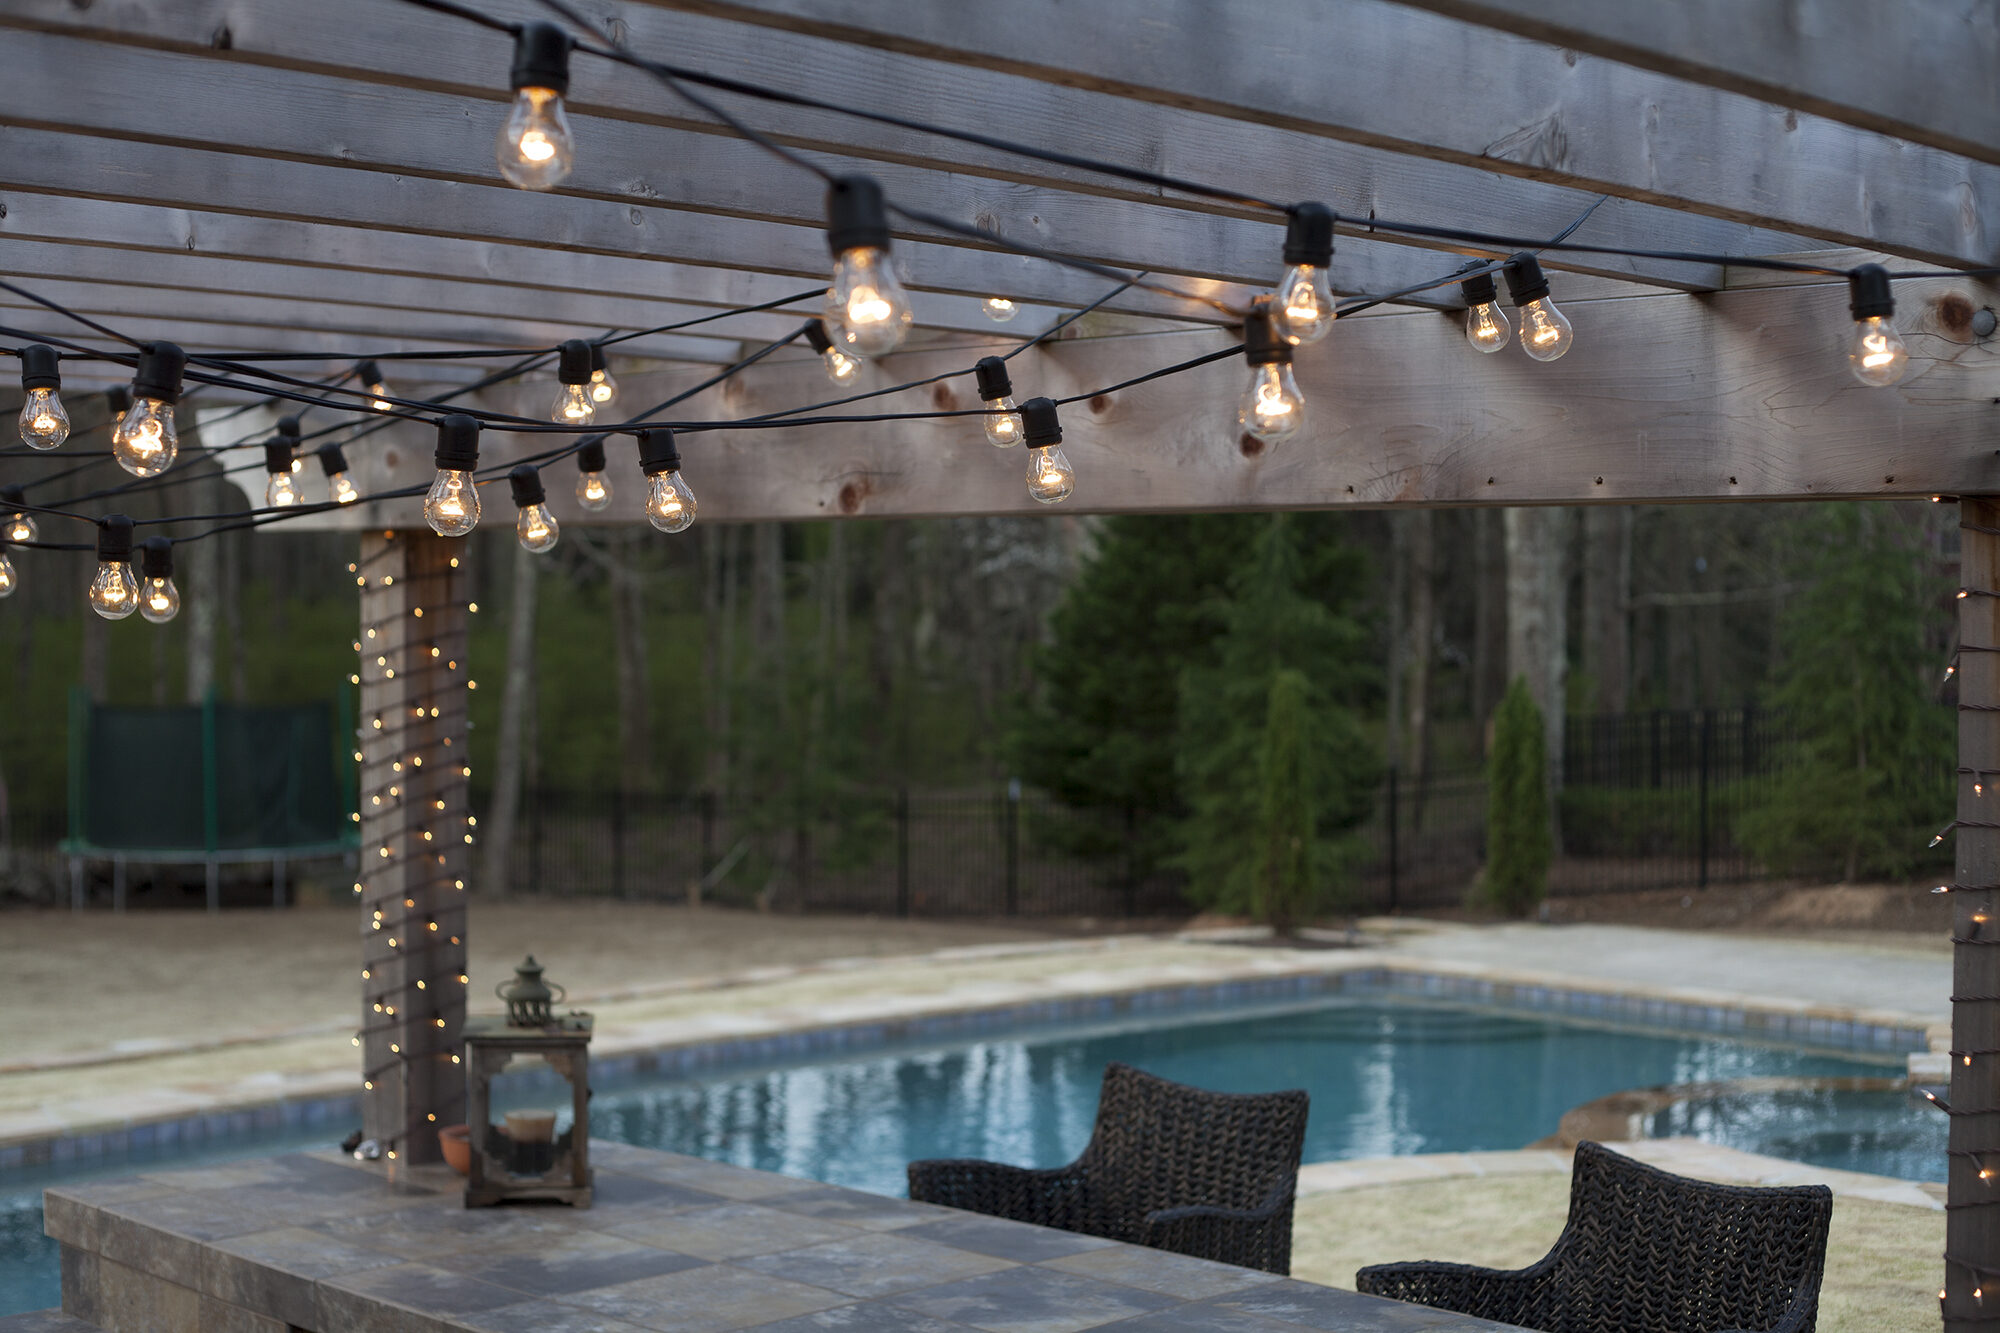 How To Hang String Lights Deck : Hanging Patio String Lights: A Pattern of Perfection - Yard Envy